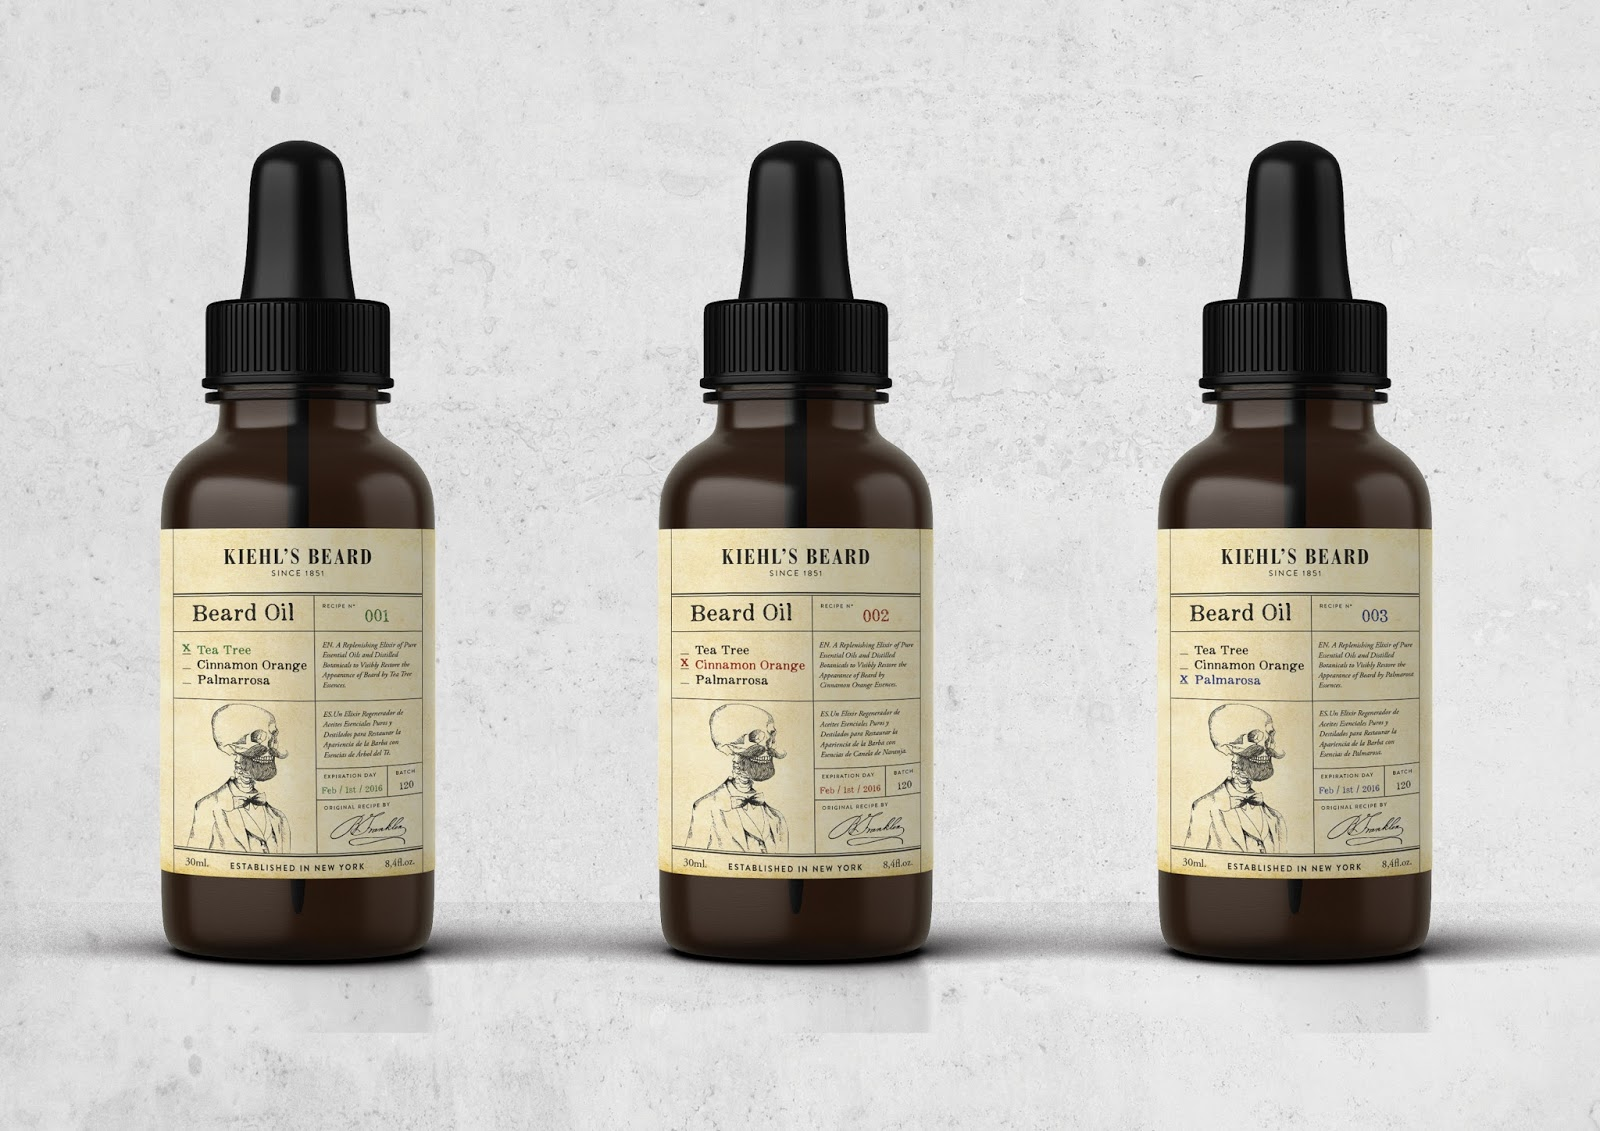 Kiehl's Beard Label